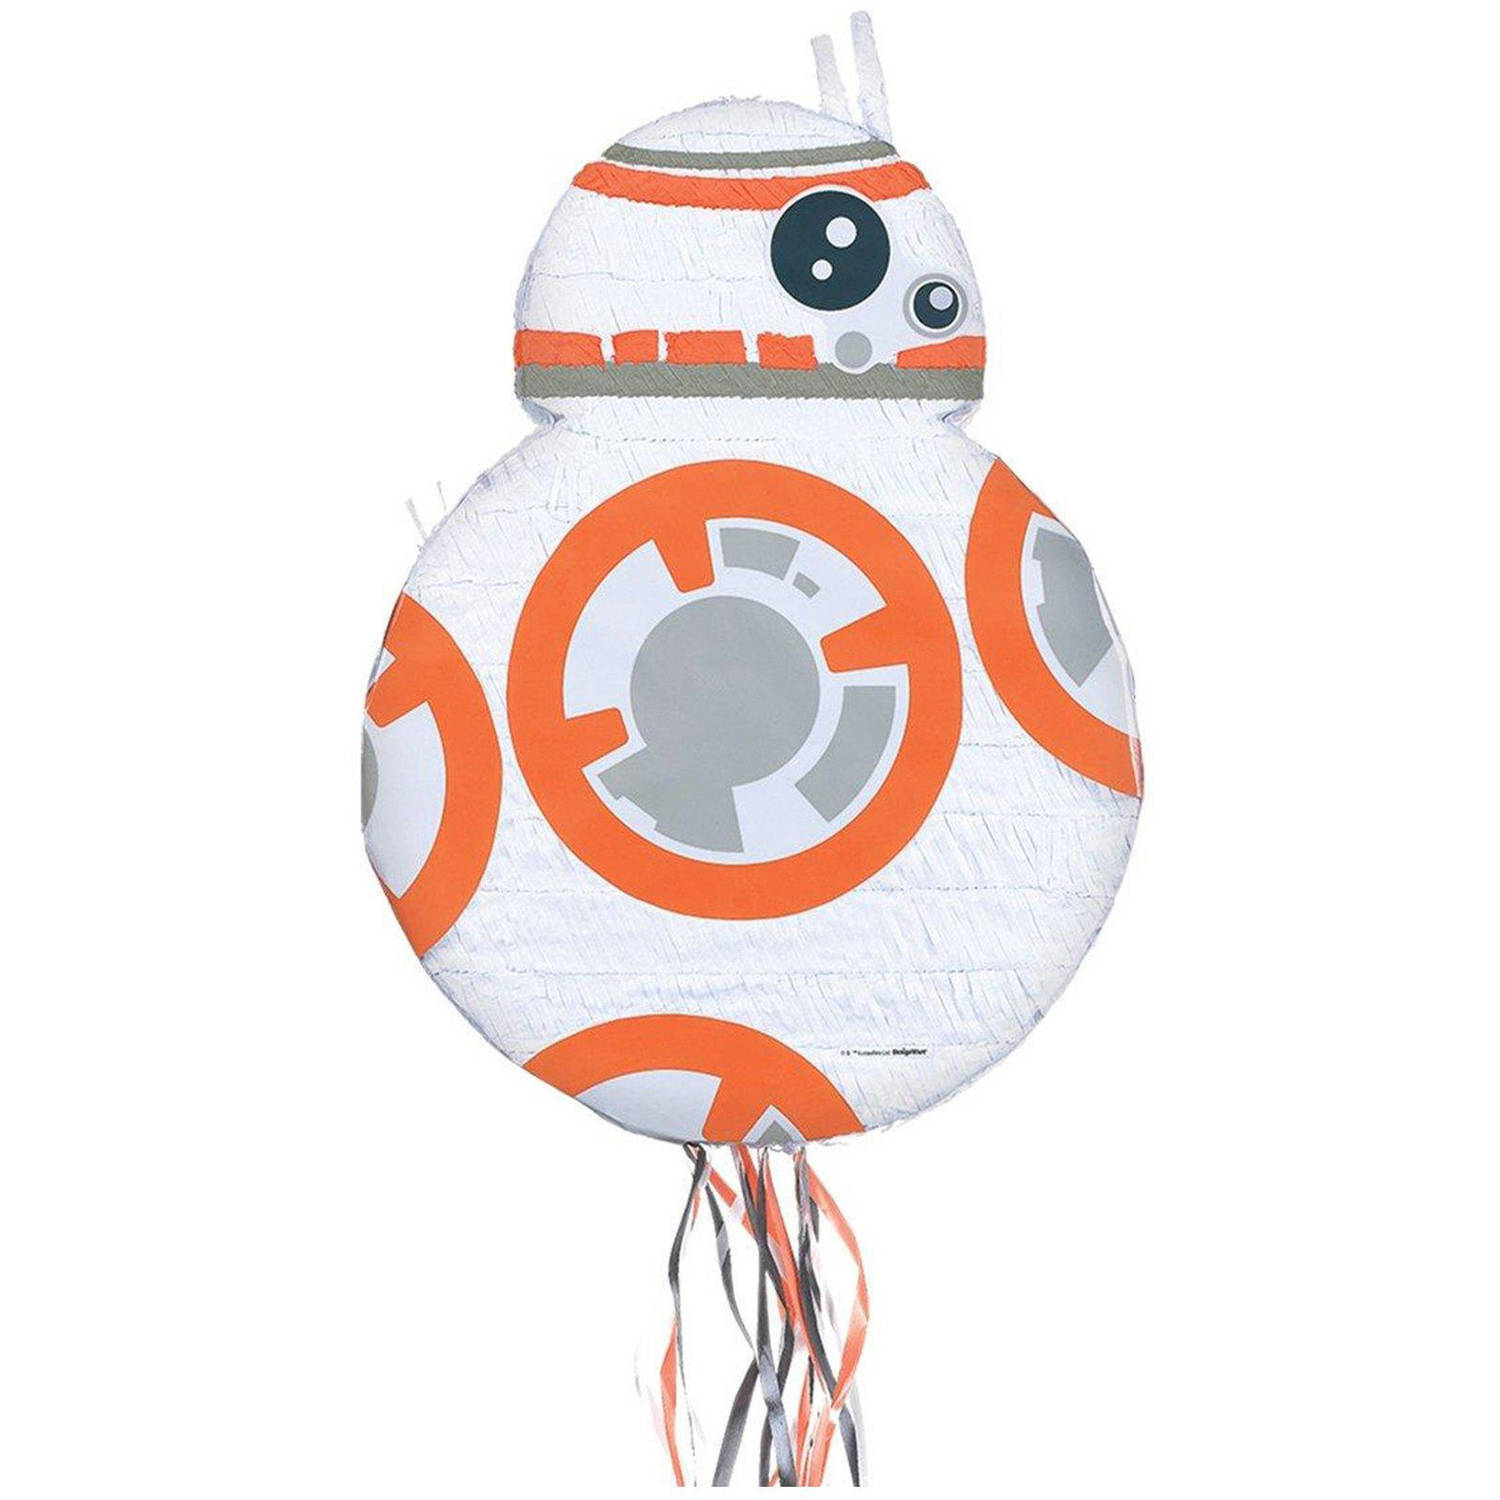 Star Wars Episode VII The Force Awakens 3D BB-8 Pull-String Pinata